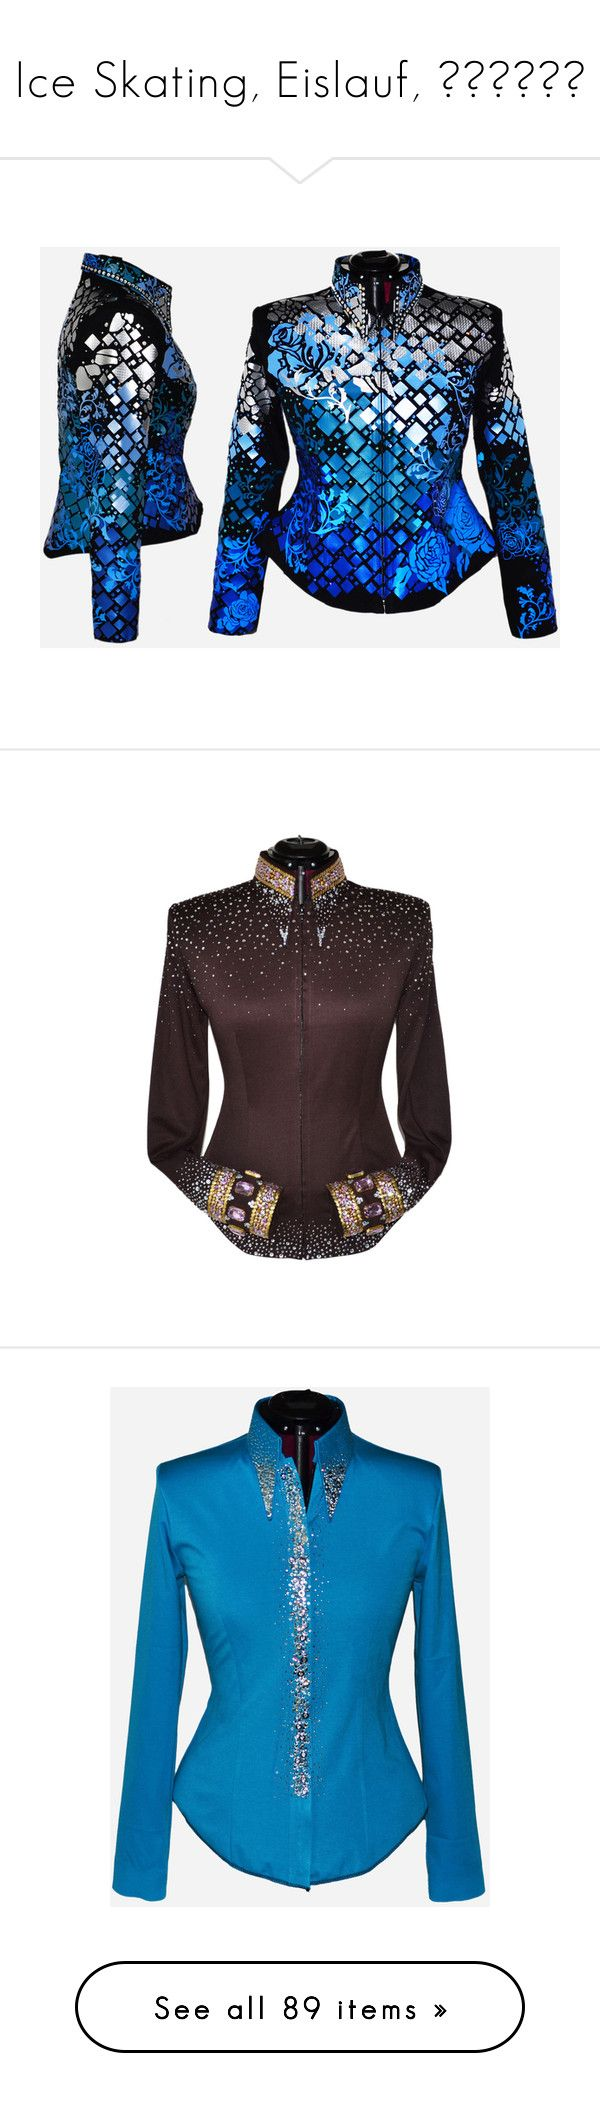 """""""Ice Skating, Eislauf, Коньки"""" by kristinaeduardovna ❤ liked on Polyvore featuring western show clothes, outerwear, jackets, sparkly jacket, collar jacket, pink jacket, embellished jacket, tops, shirts & tops and cowboy shirts"""